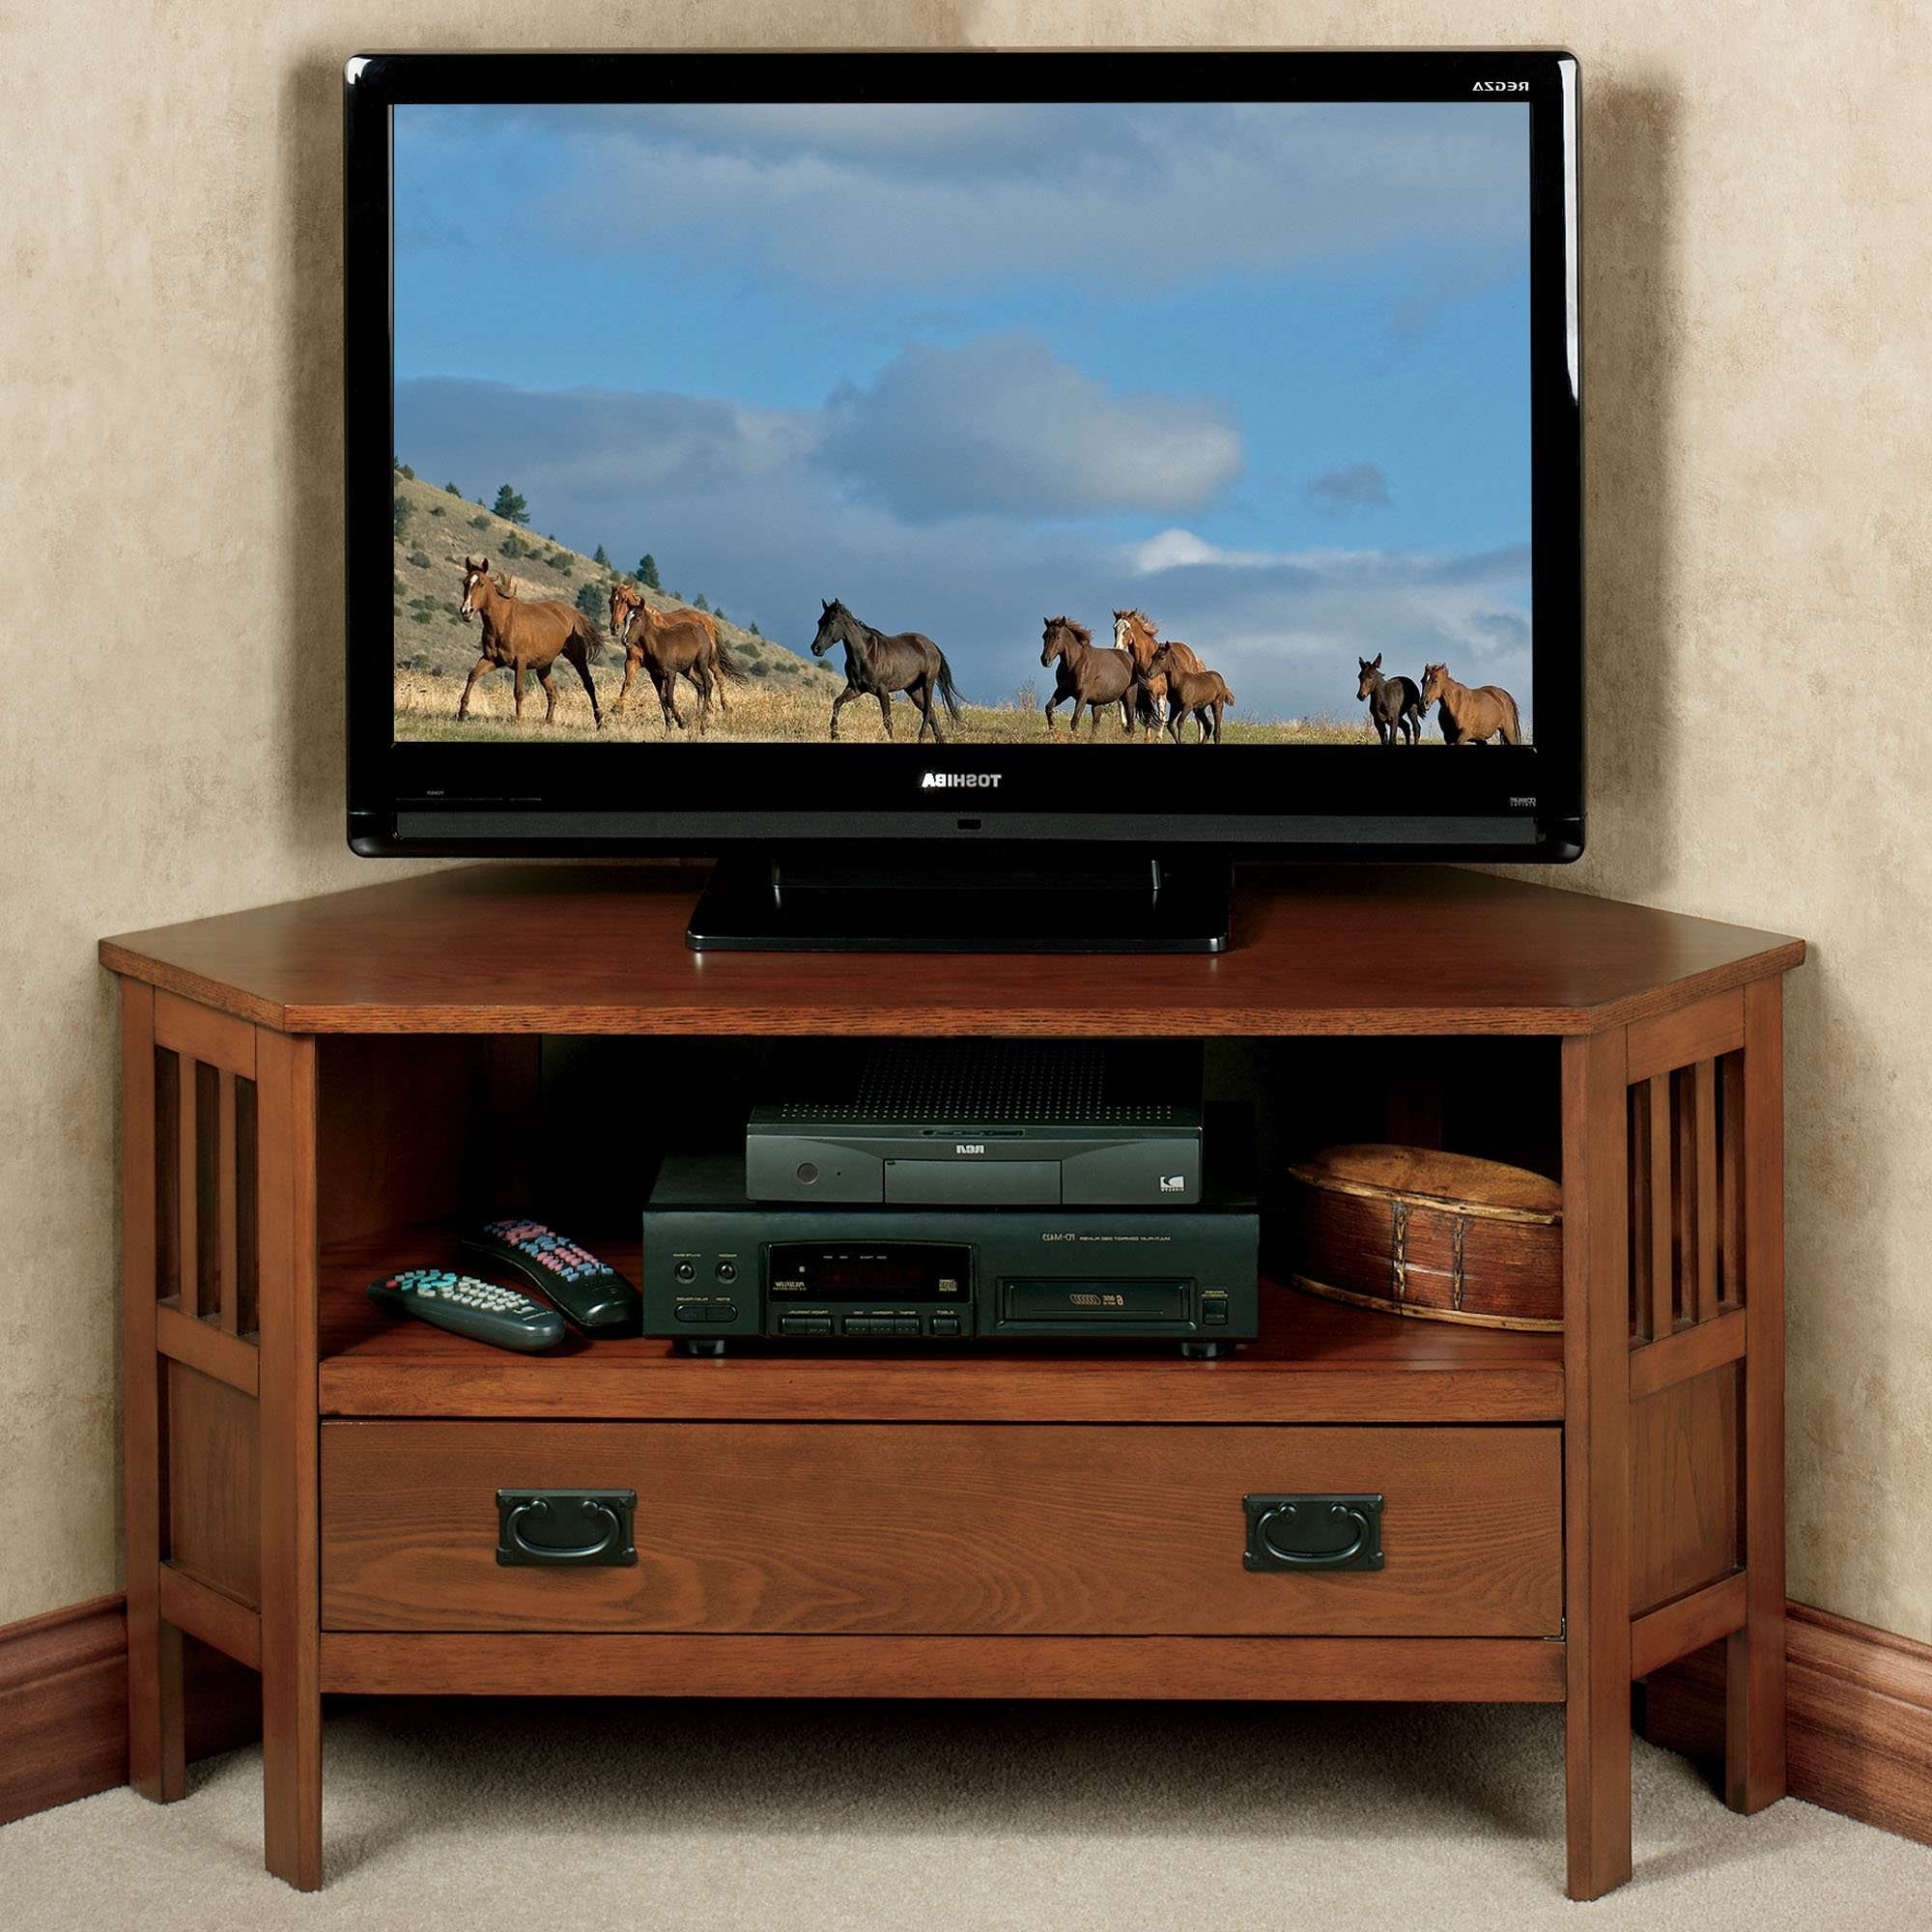 60 Inch Tv Stand (View 14 of 20)